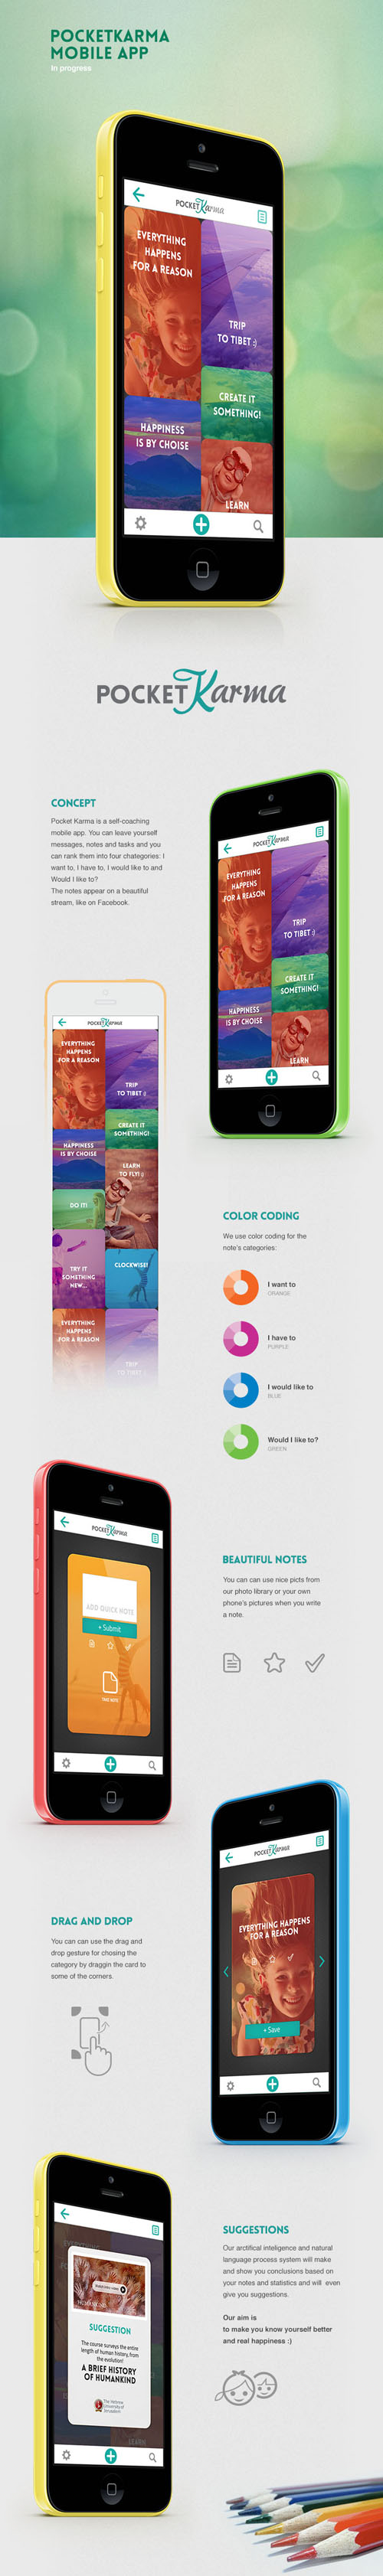 Amazing Mobile App UI Designs with Ultimate User Experience - 45